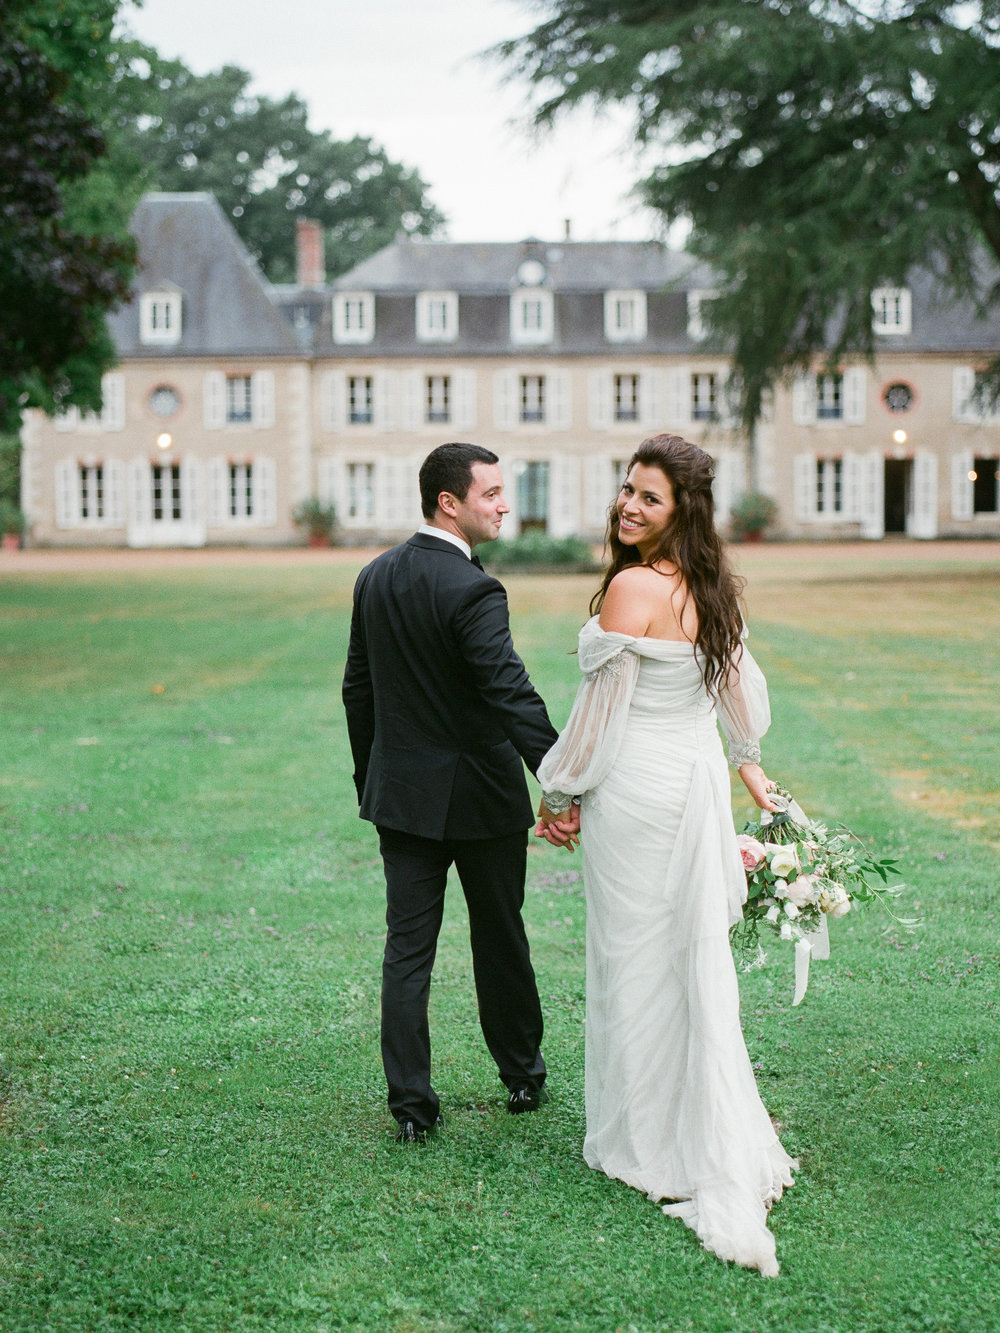 fine art wedding florist, foraged floral, chateau bouthonvilliers wedding florist in paris france wedding.jpg